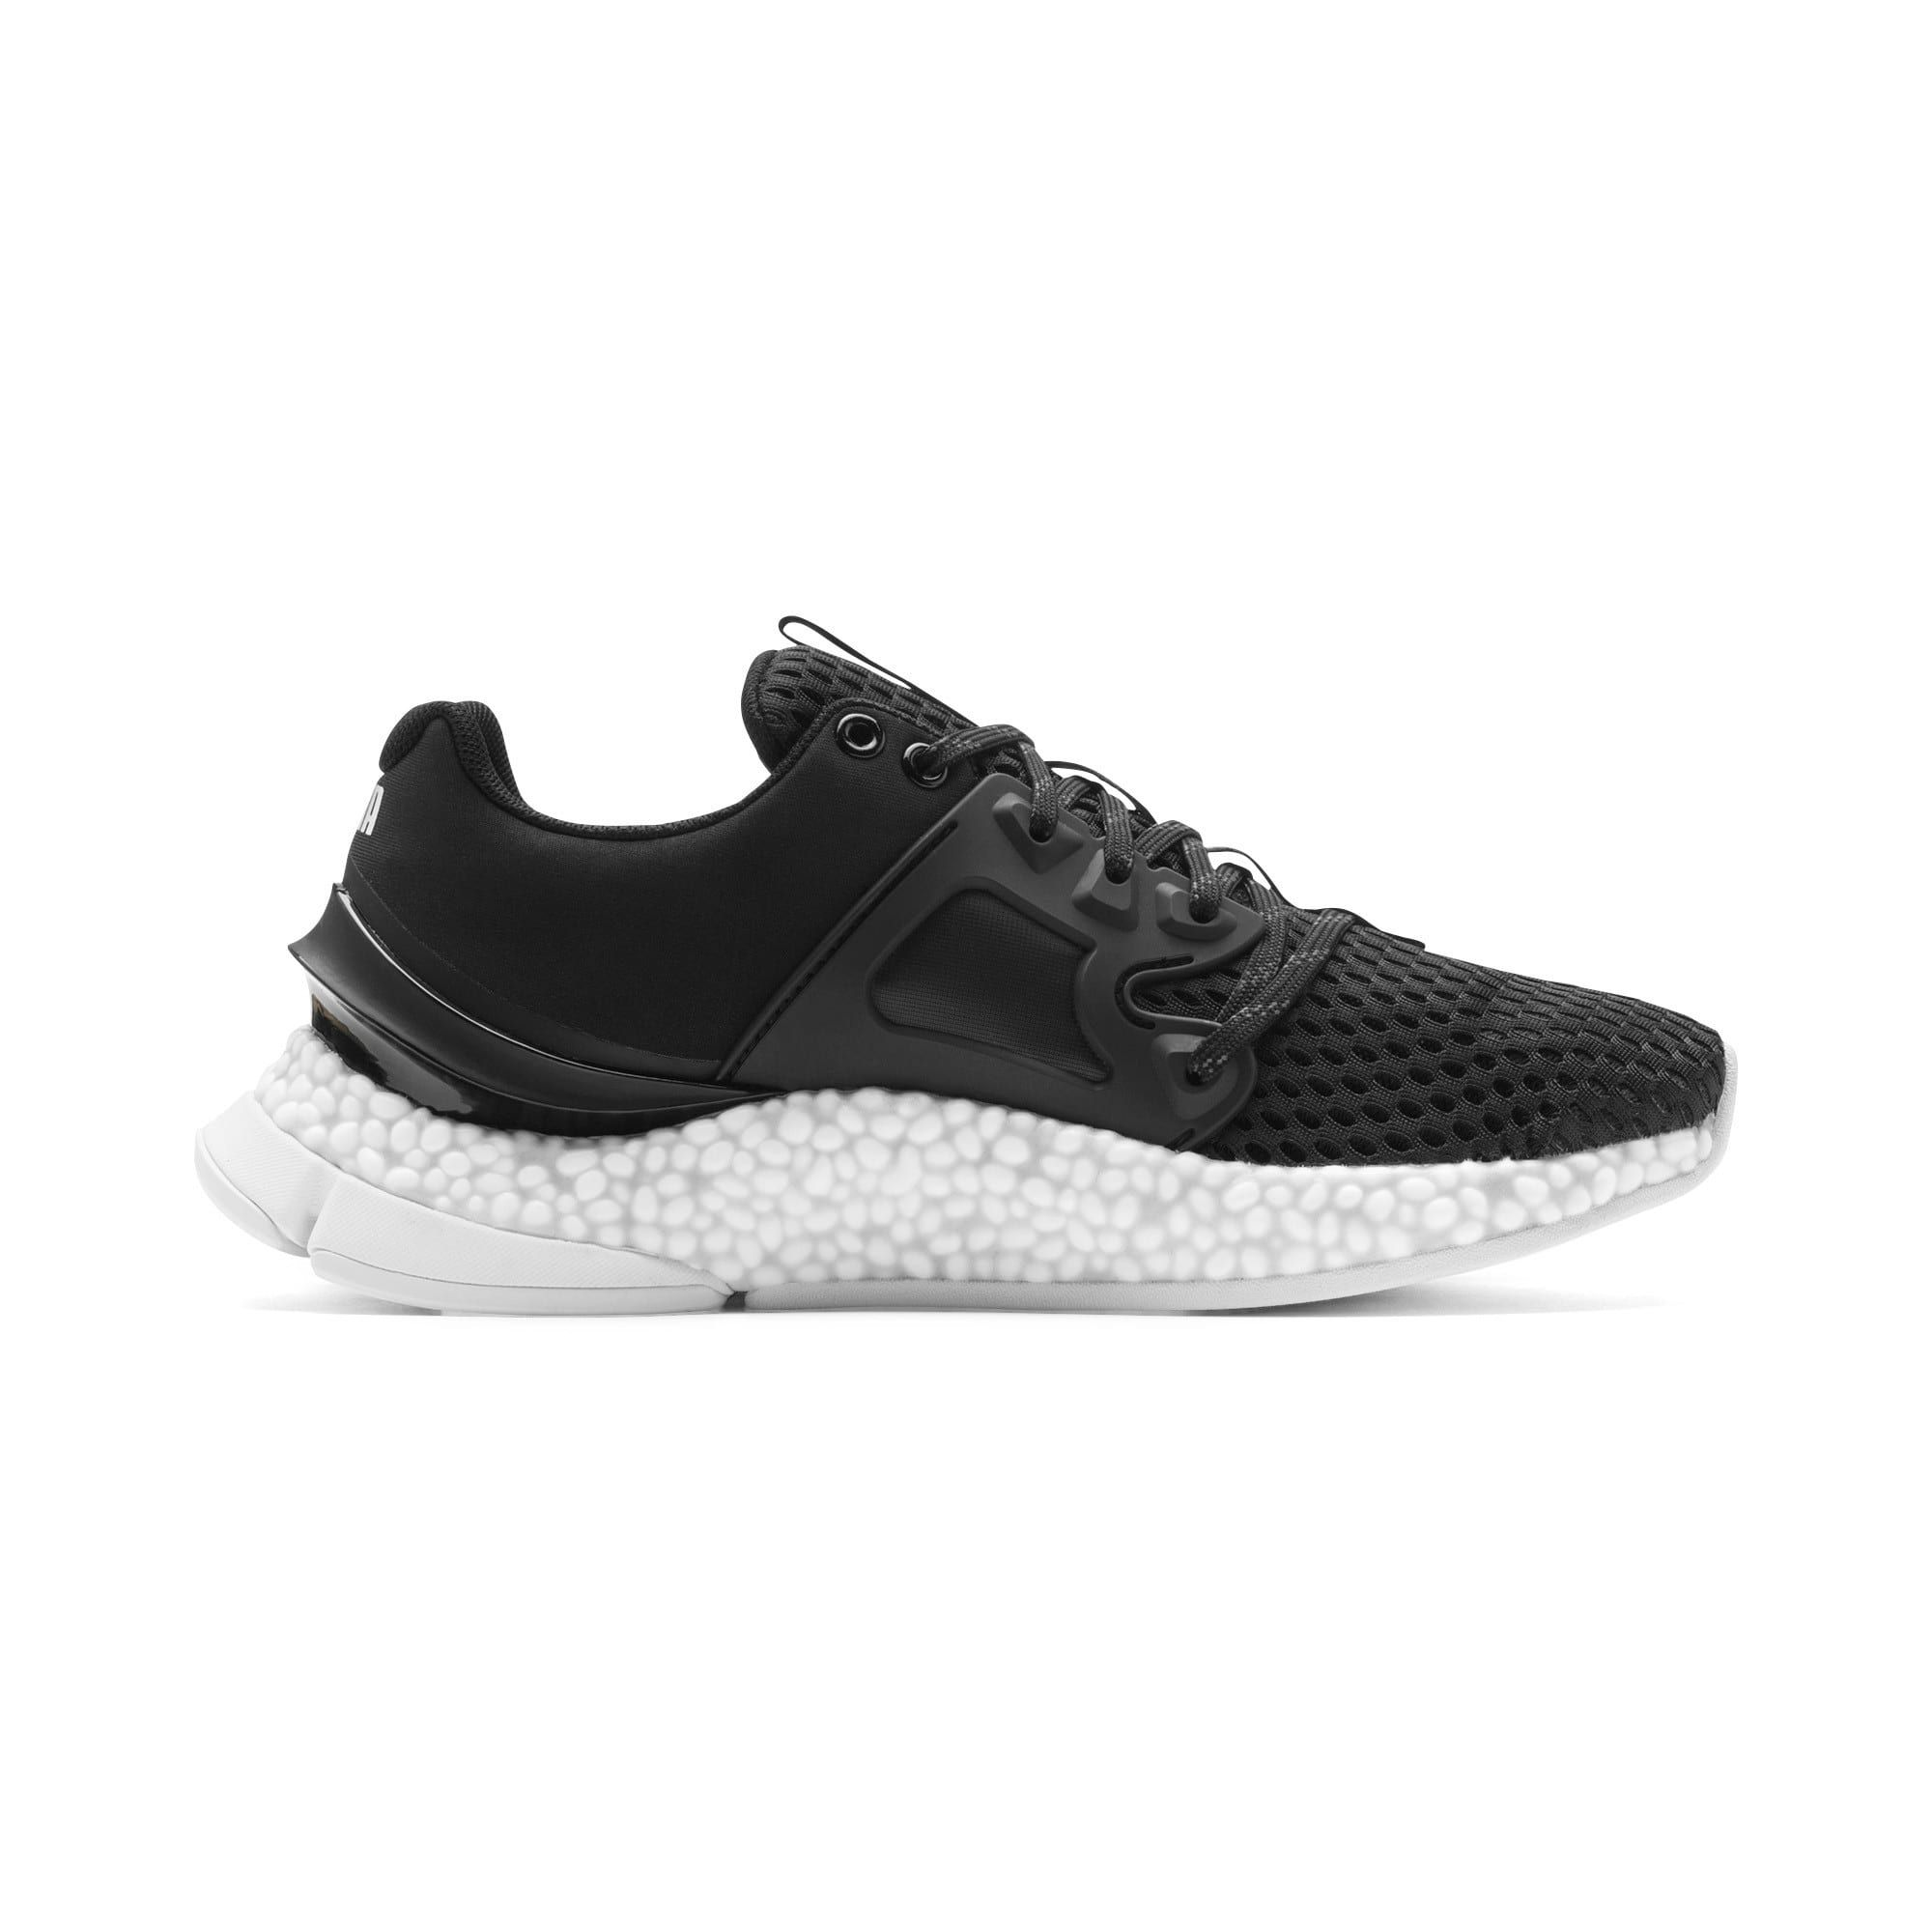 Photo of PUMA Hybrid Sky Women's Running Shoes in Black/White size 6